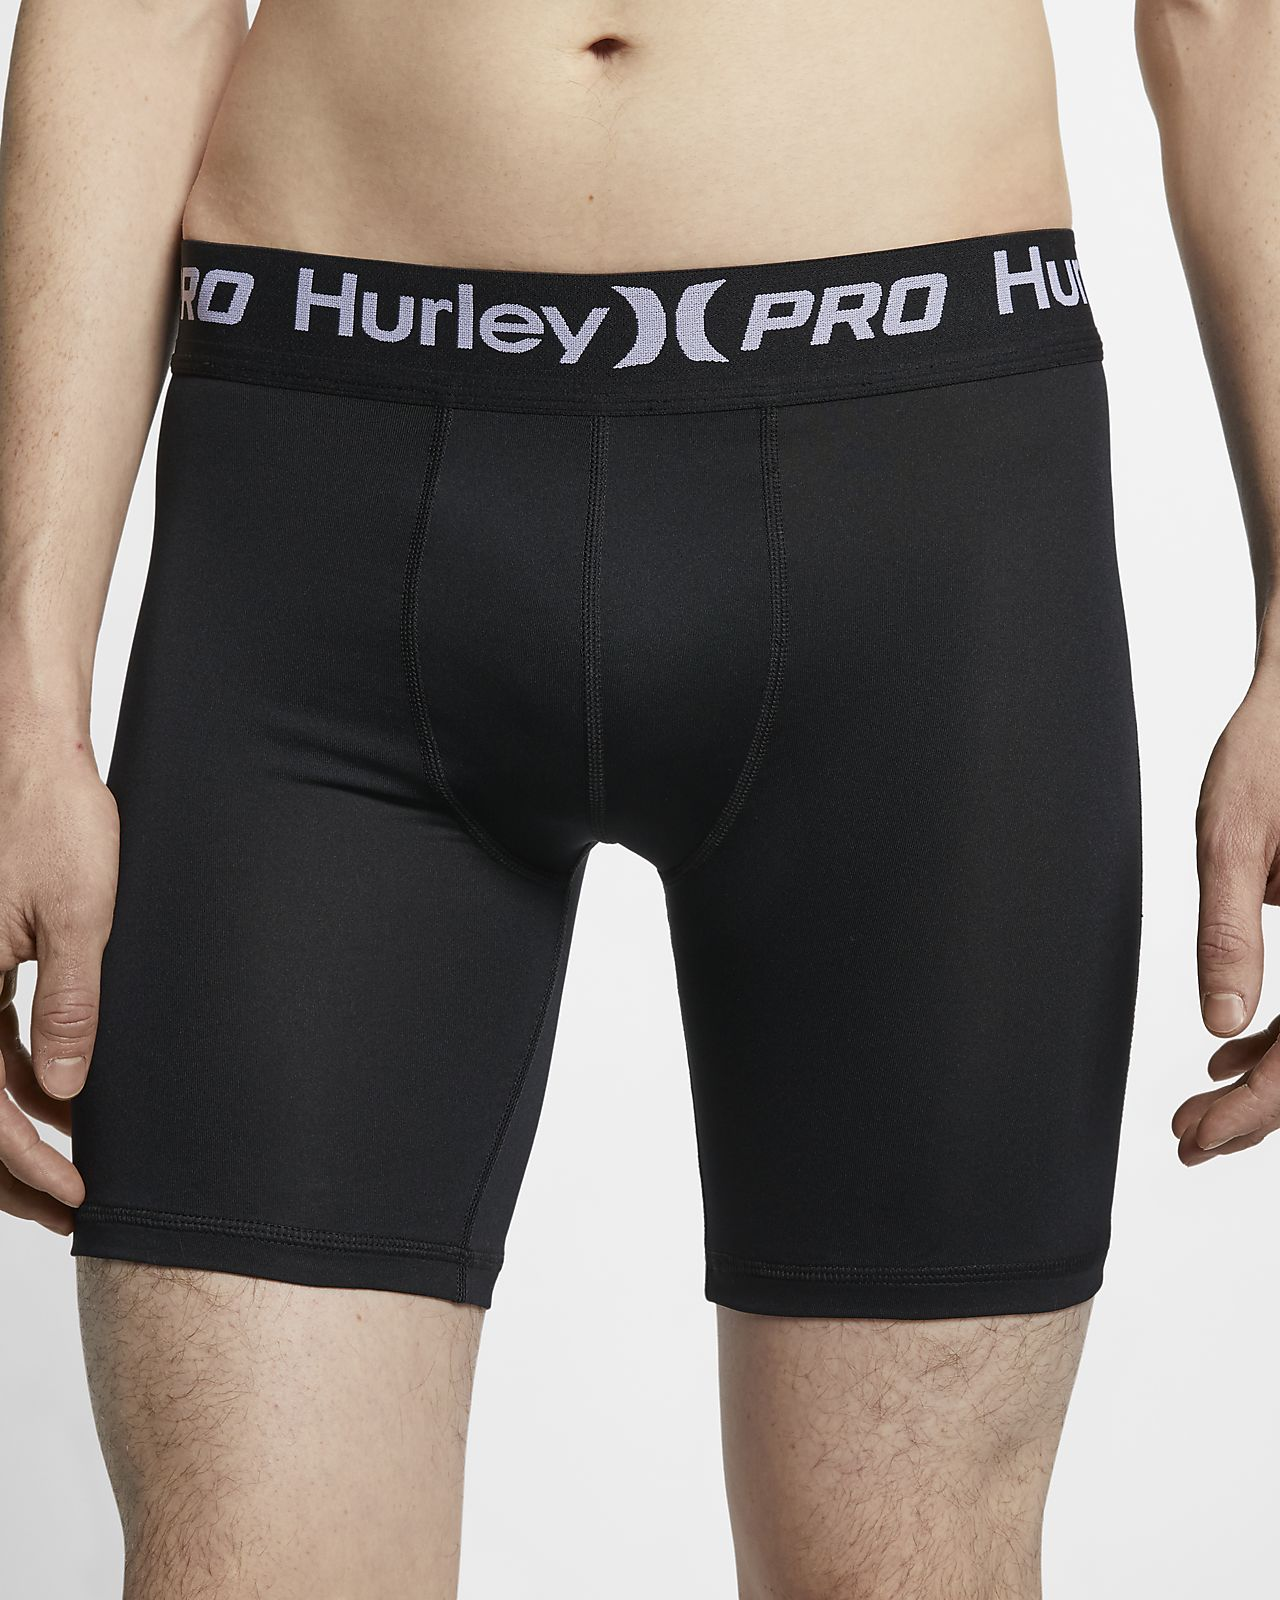 Hurley Mens Pro Light Surf Undershorts 13